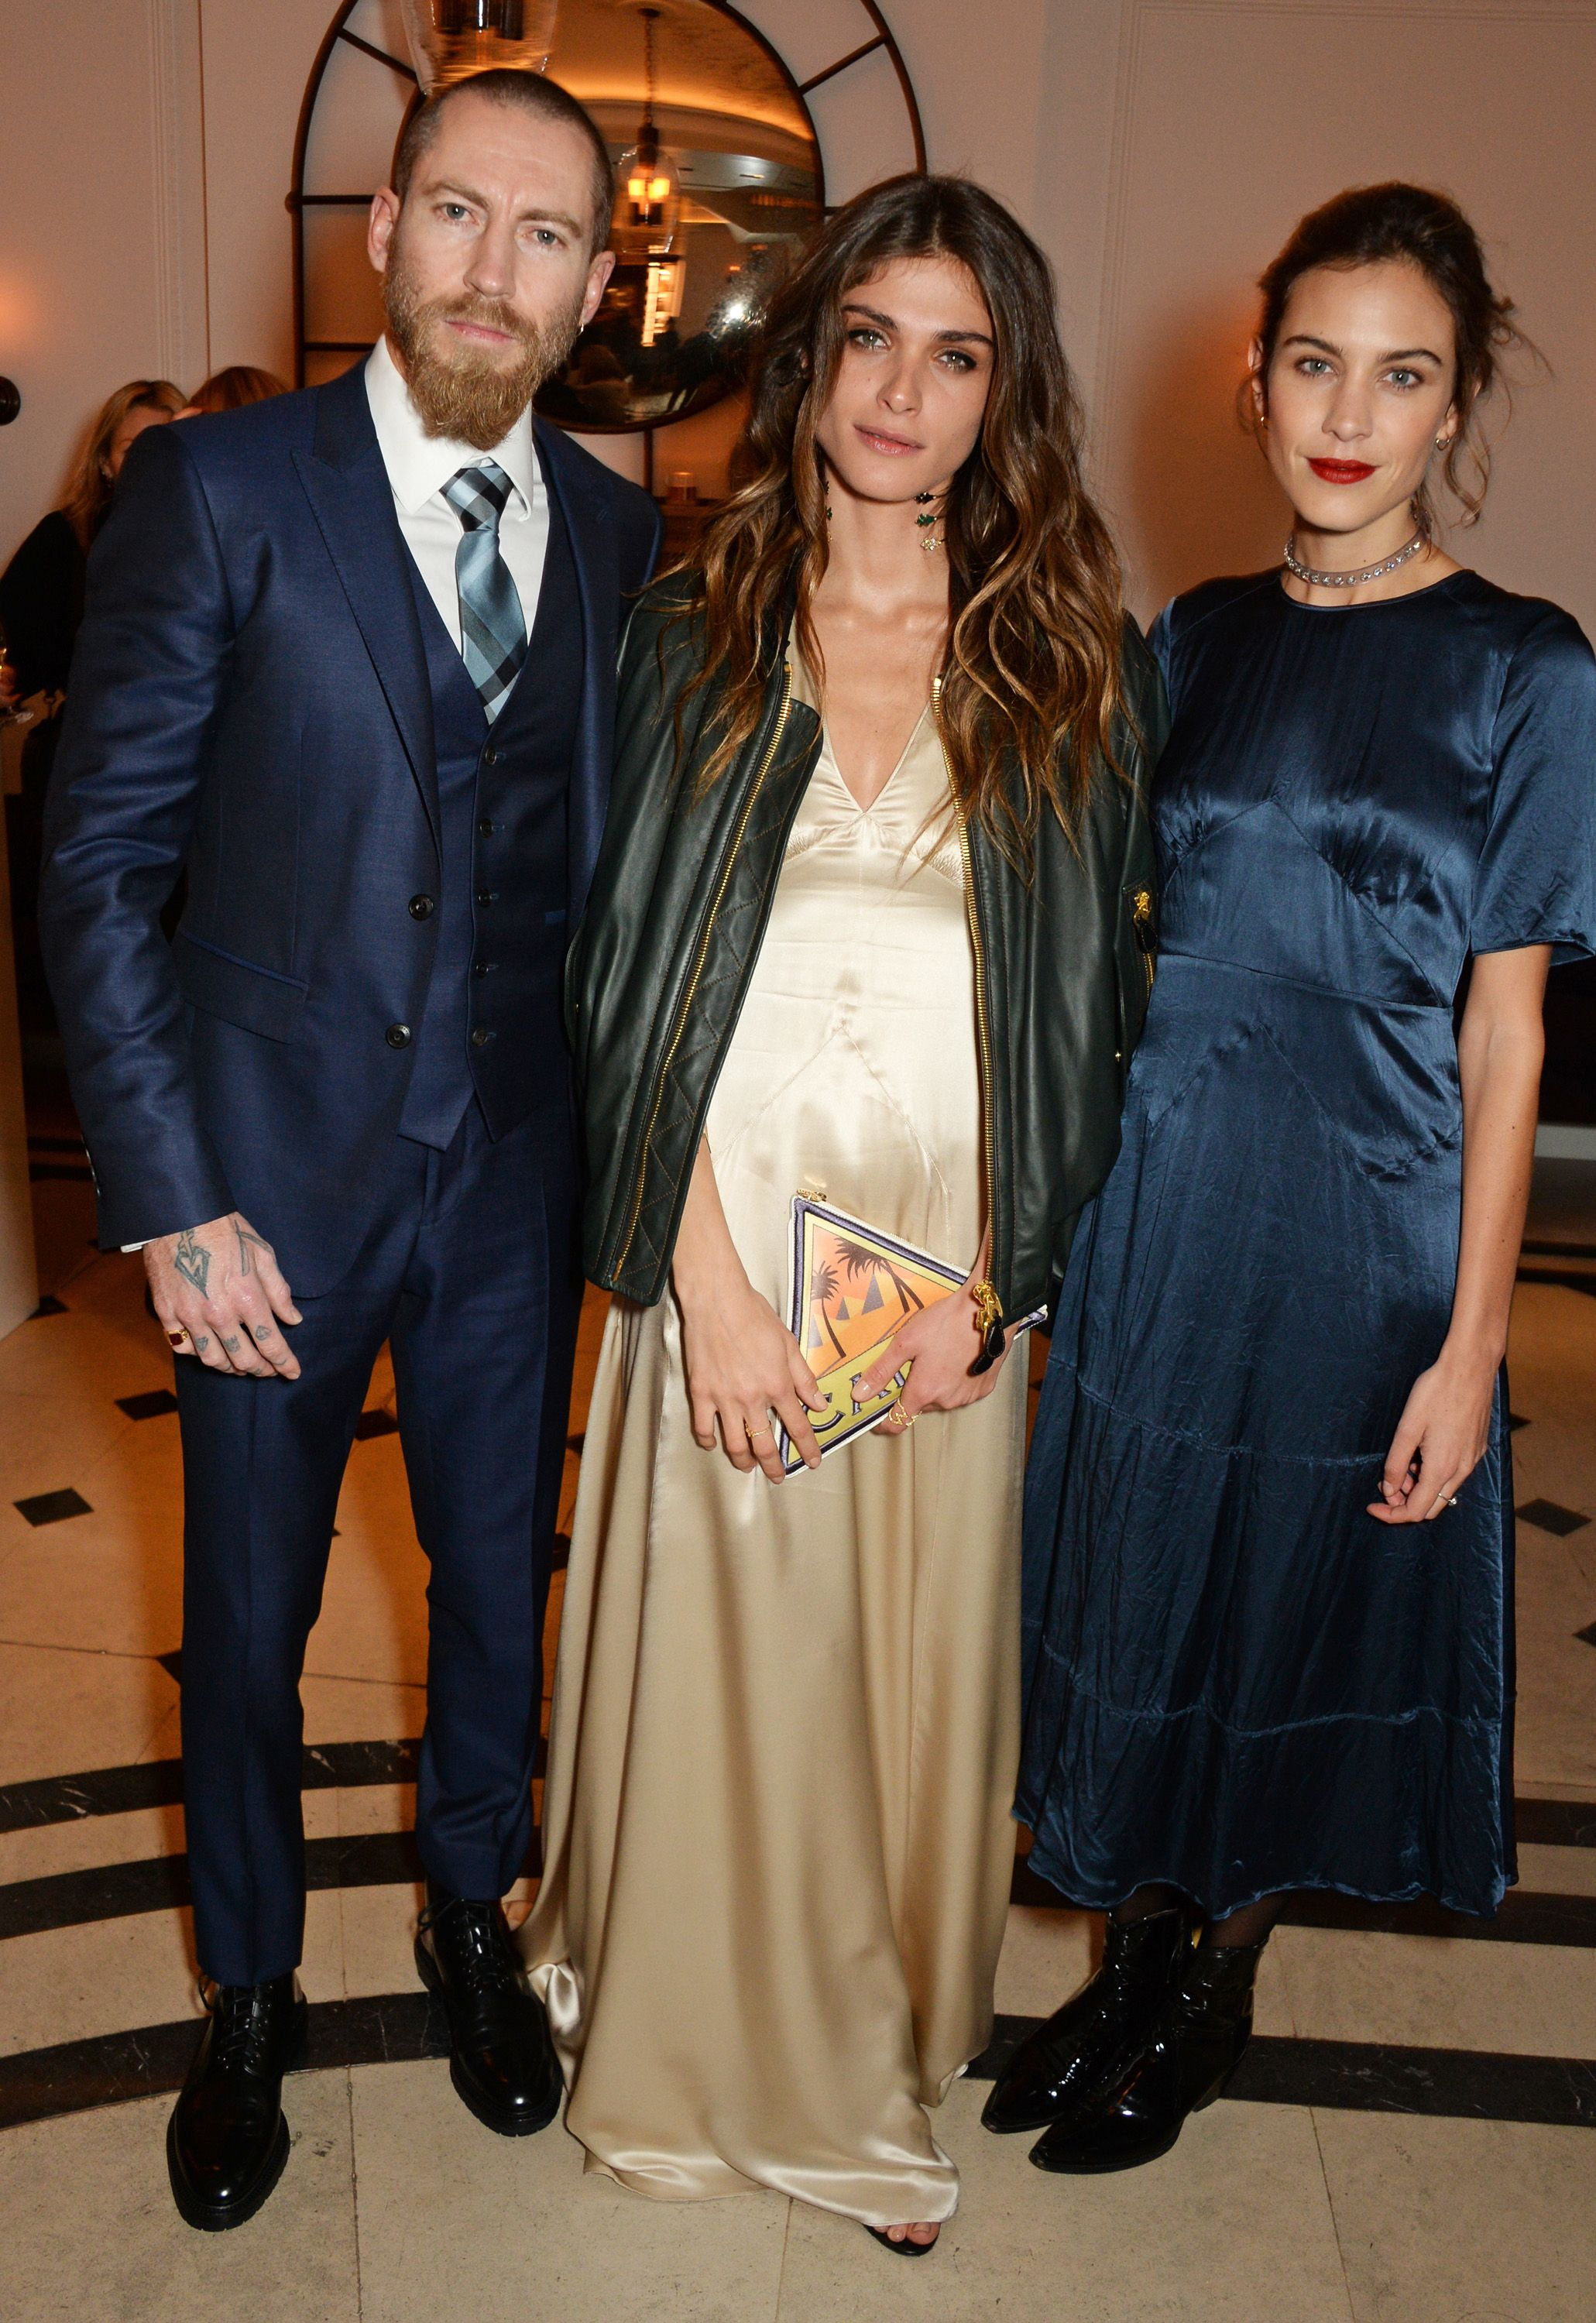 b6172a9a560 Our 11th #mytheresa woman Elisa Sednaoui Dellal joined Justin O'Shea ...